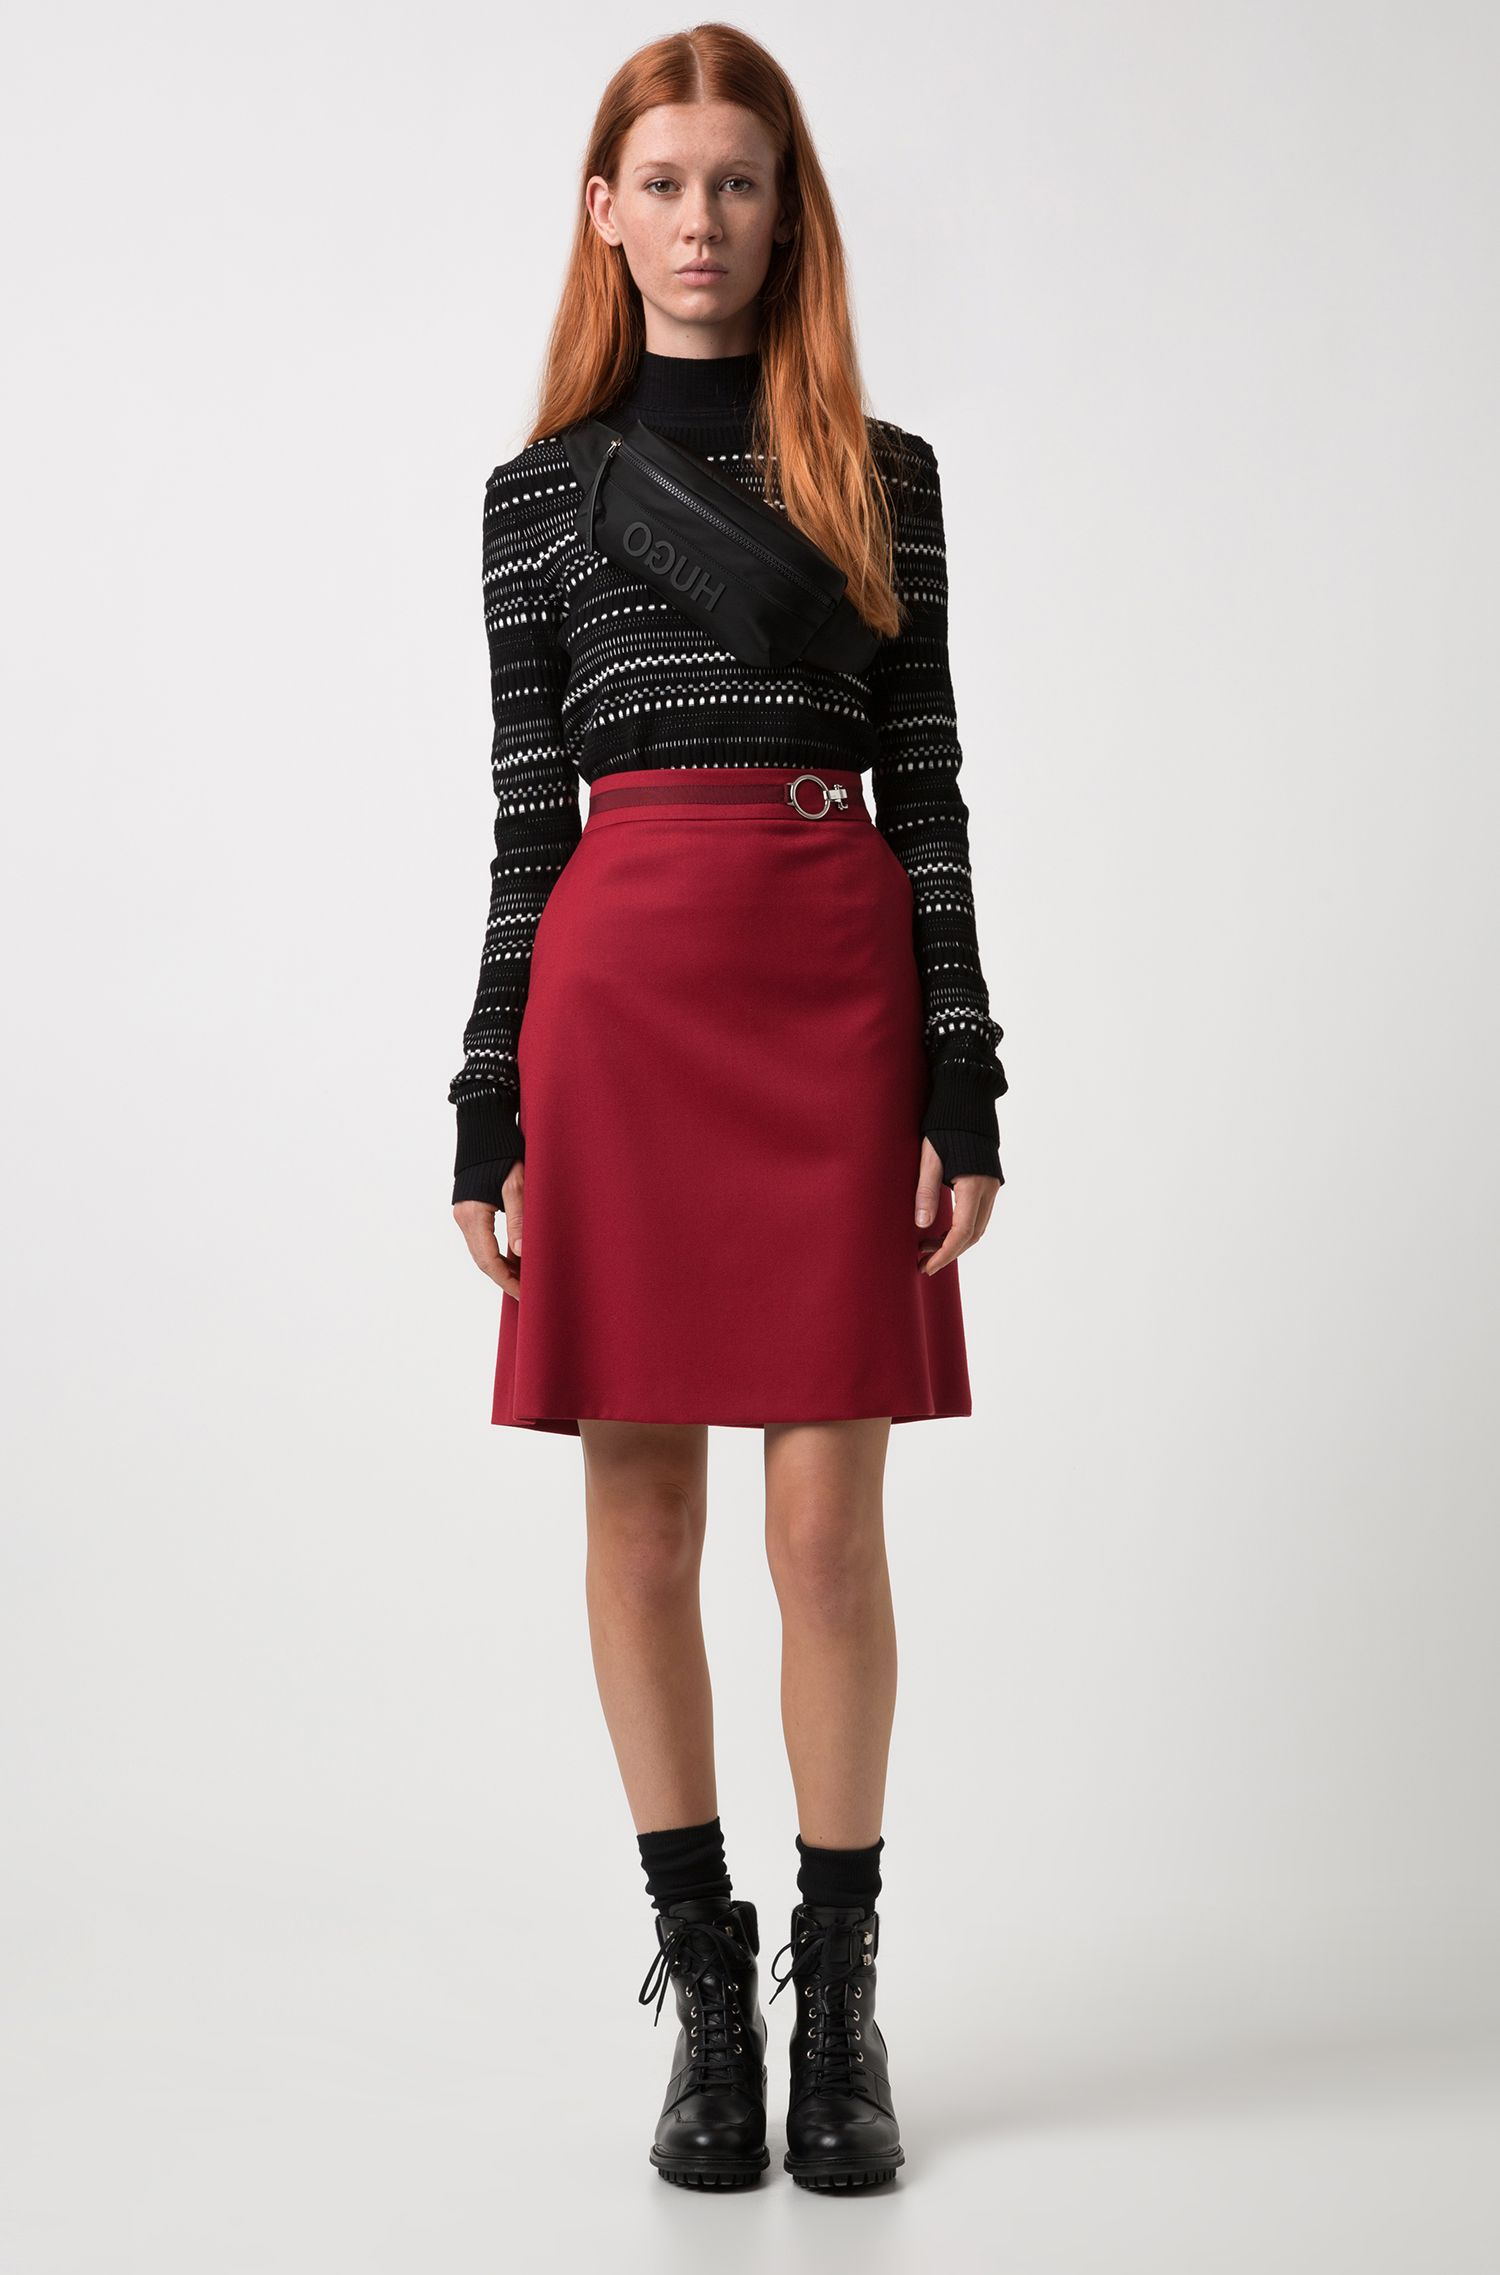 A-line miniskirt in stretch virgin wool with signature buckle